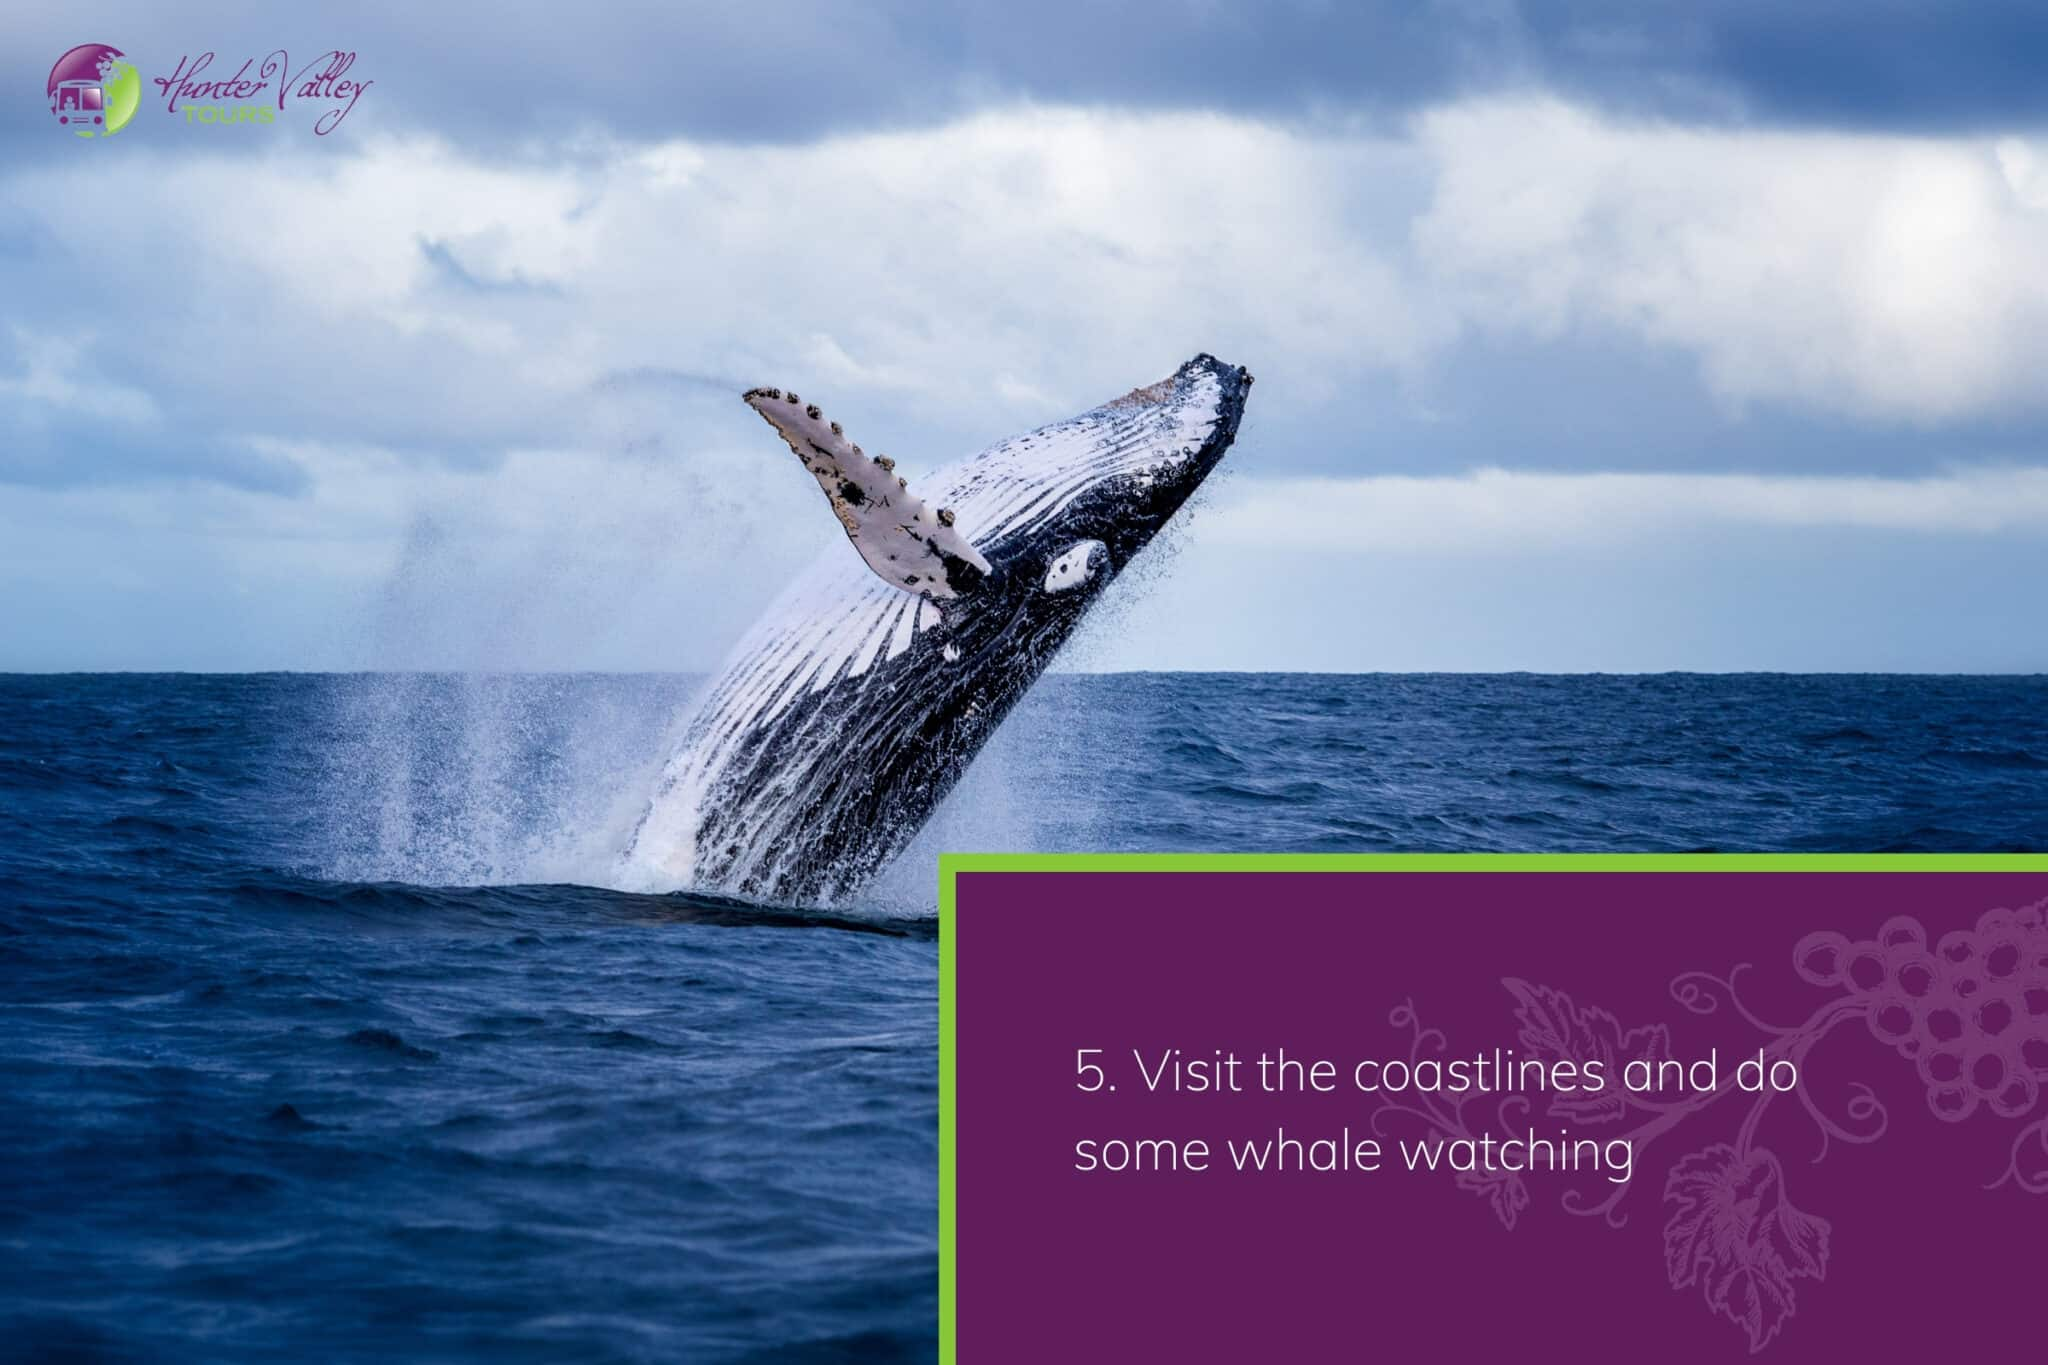 Visit the coastlines and do some whale watching